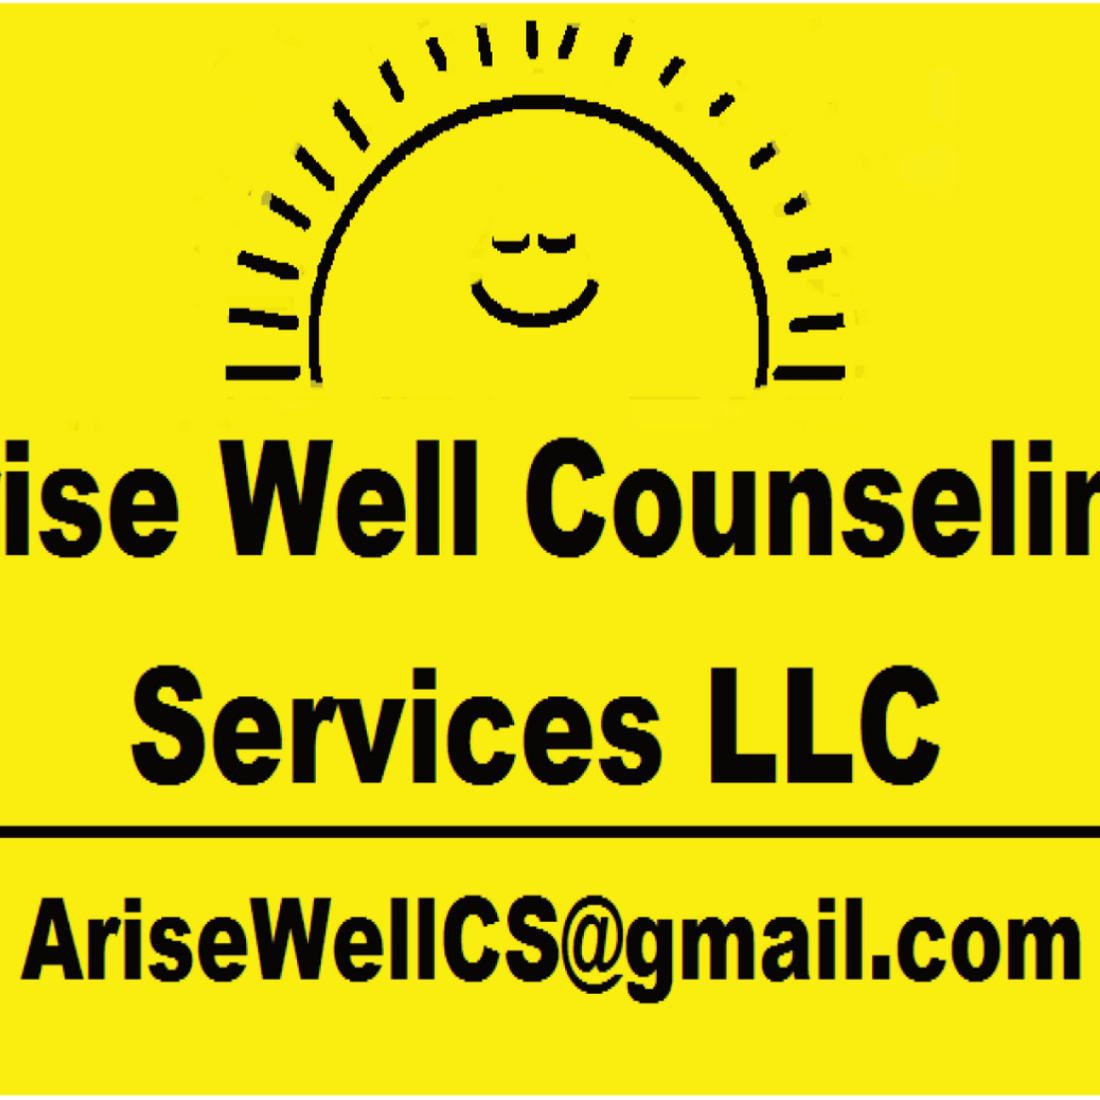 Arise Well Counseling Services LLC,Counseling Training, Presentations for school, parenting, assisted living, senior living